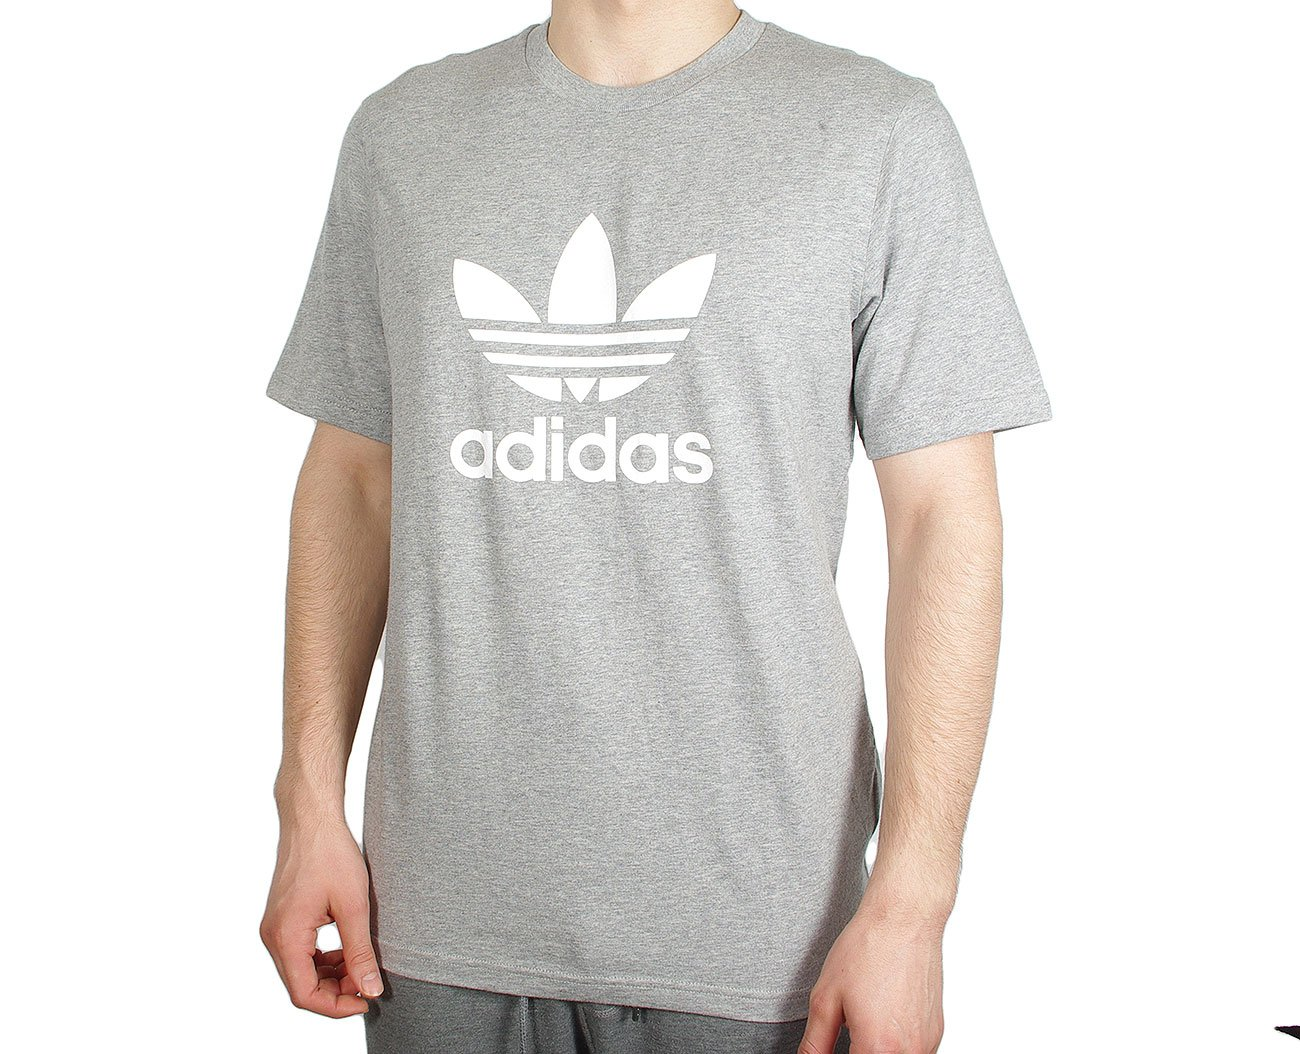 Adidas Trefoil T-Shirt Medium Grey Heather